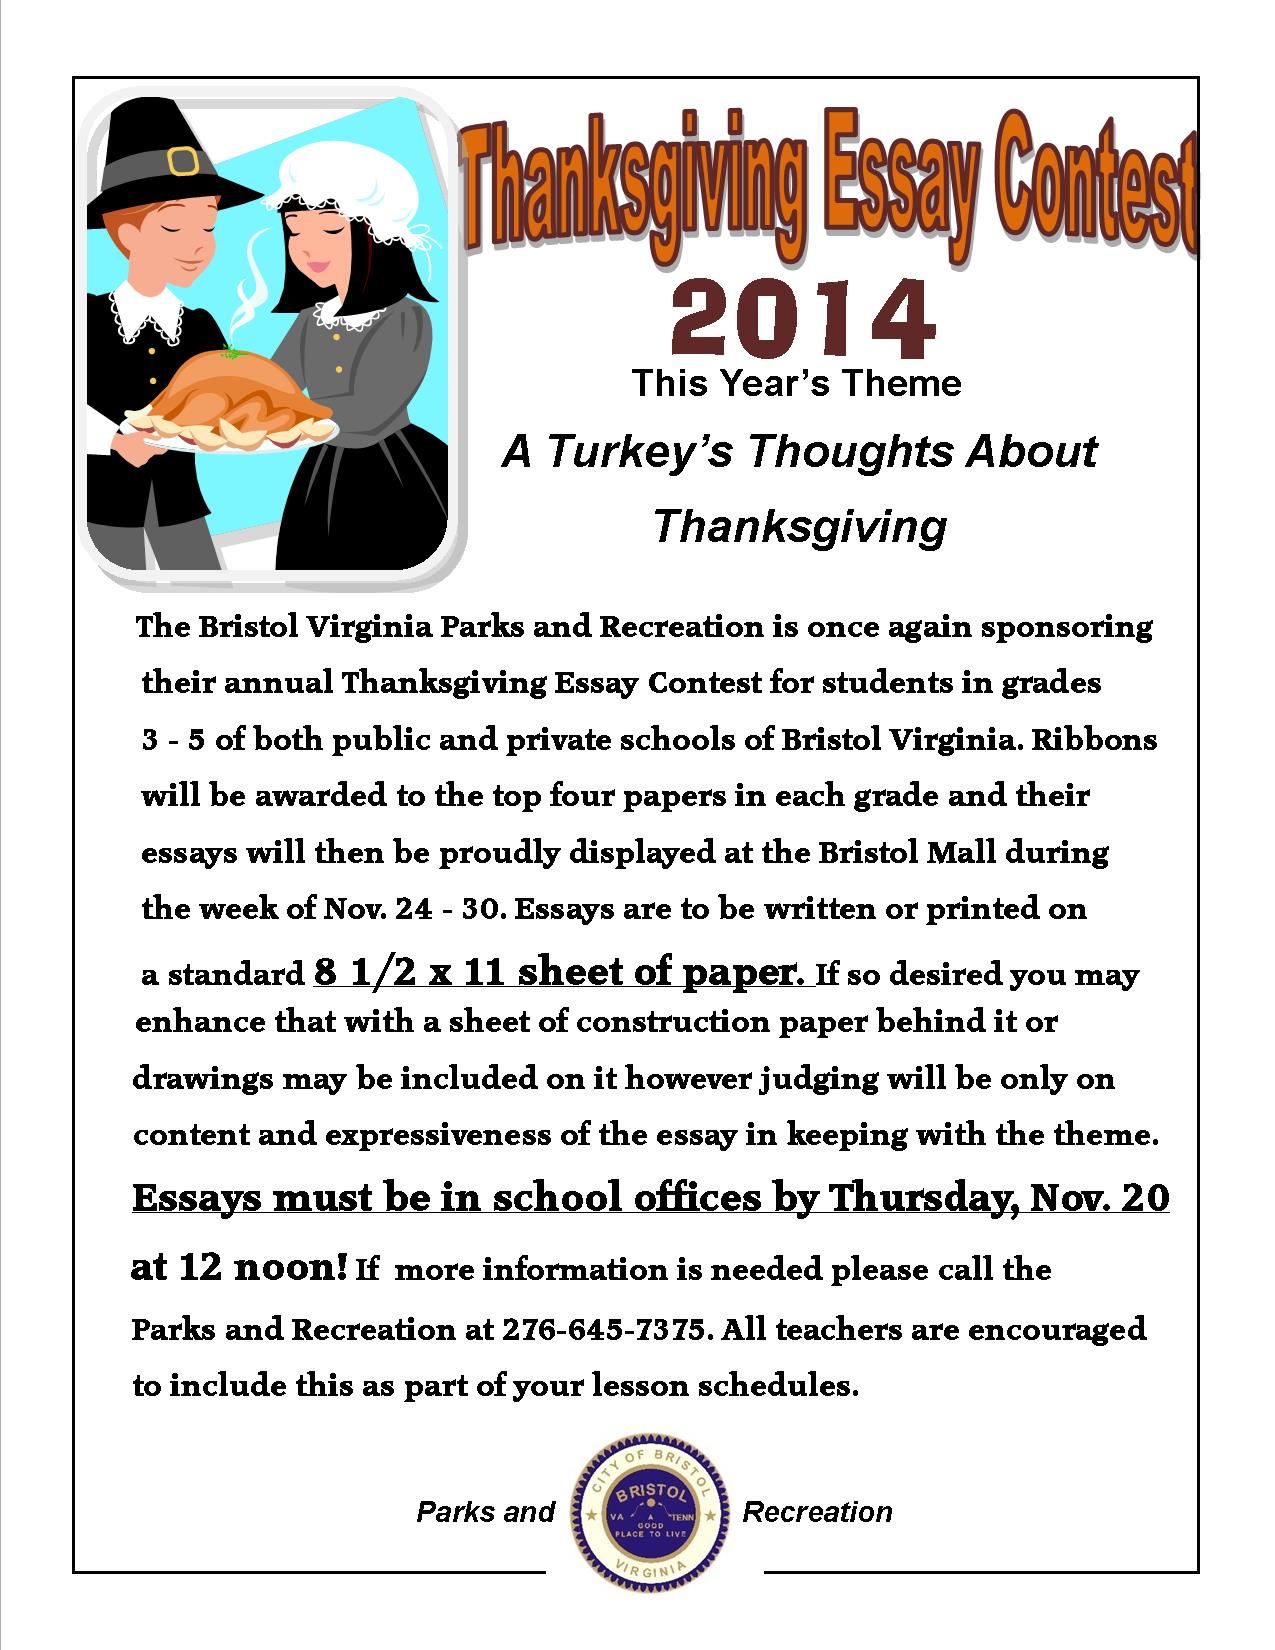 Thanksgiving Essay Contest 2014.jpg